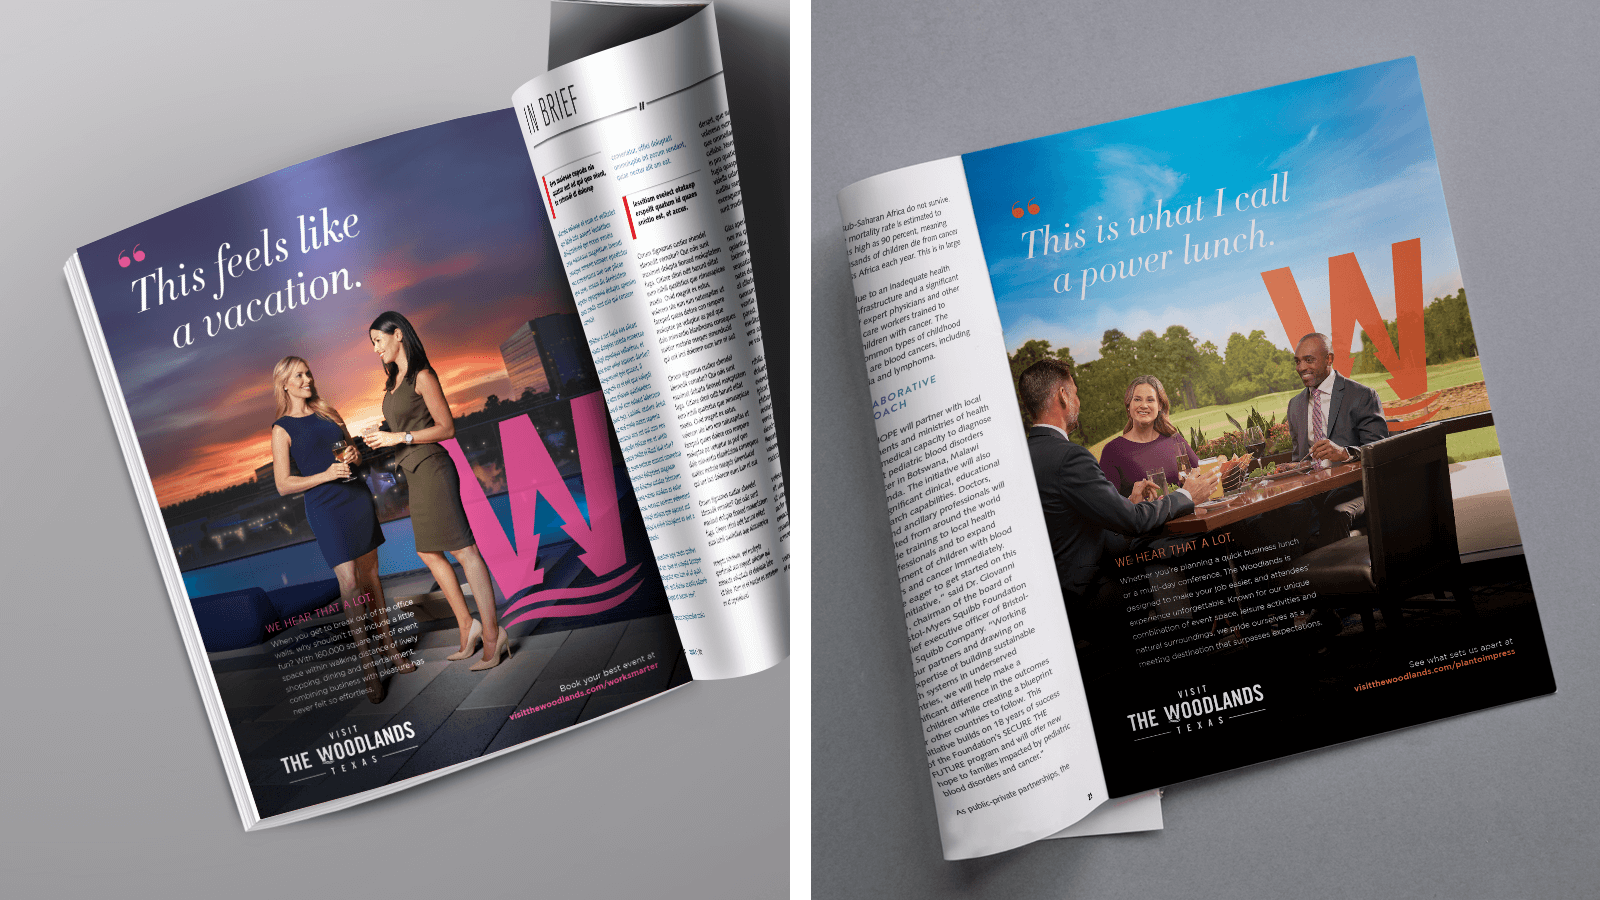 The Woodlands magazine and featured gold course + restaurant